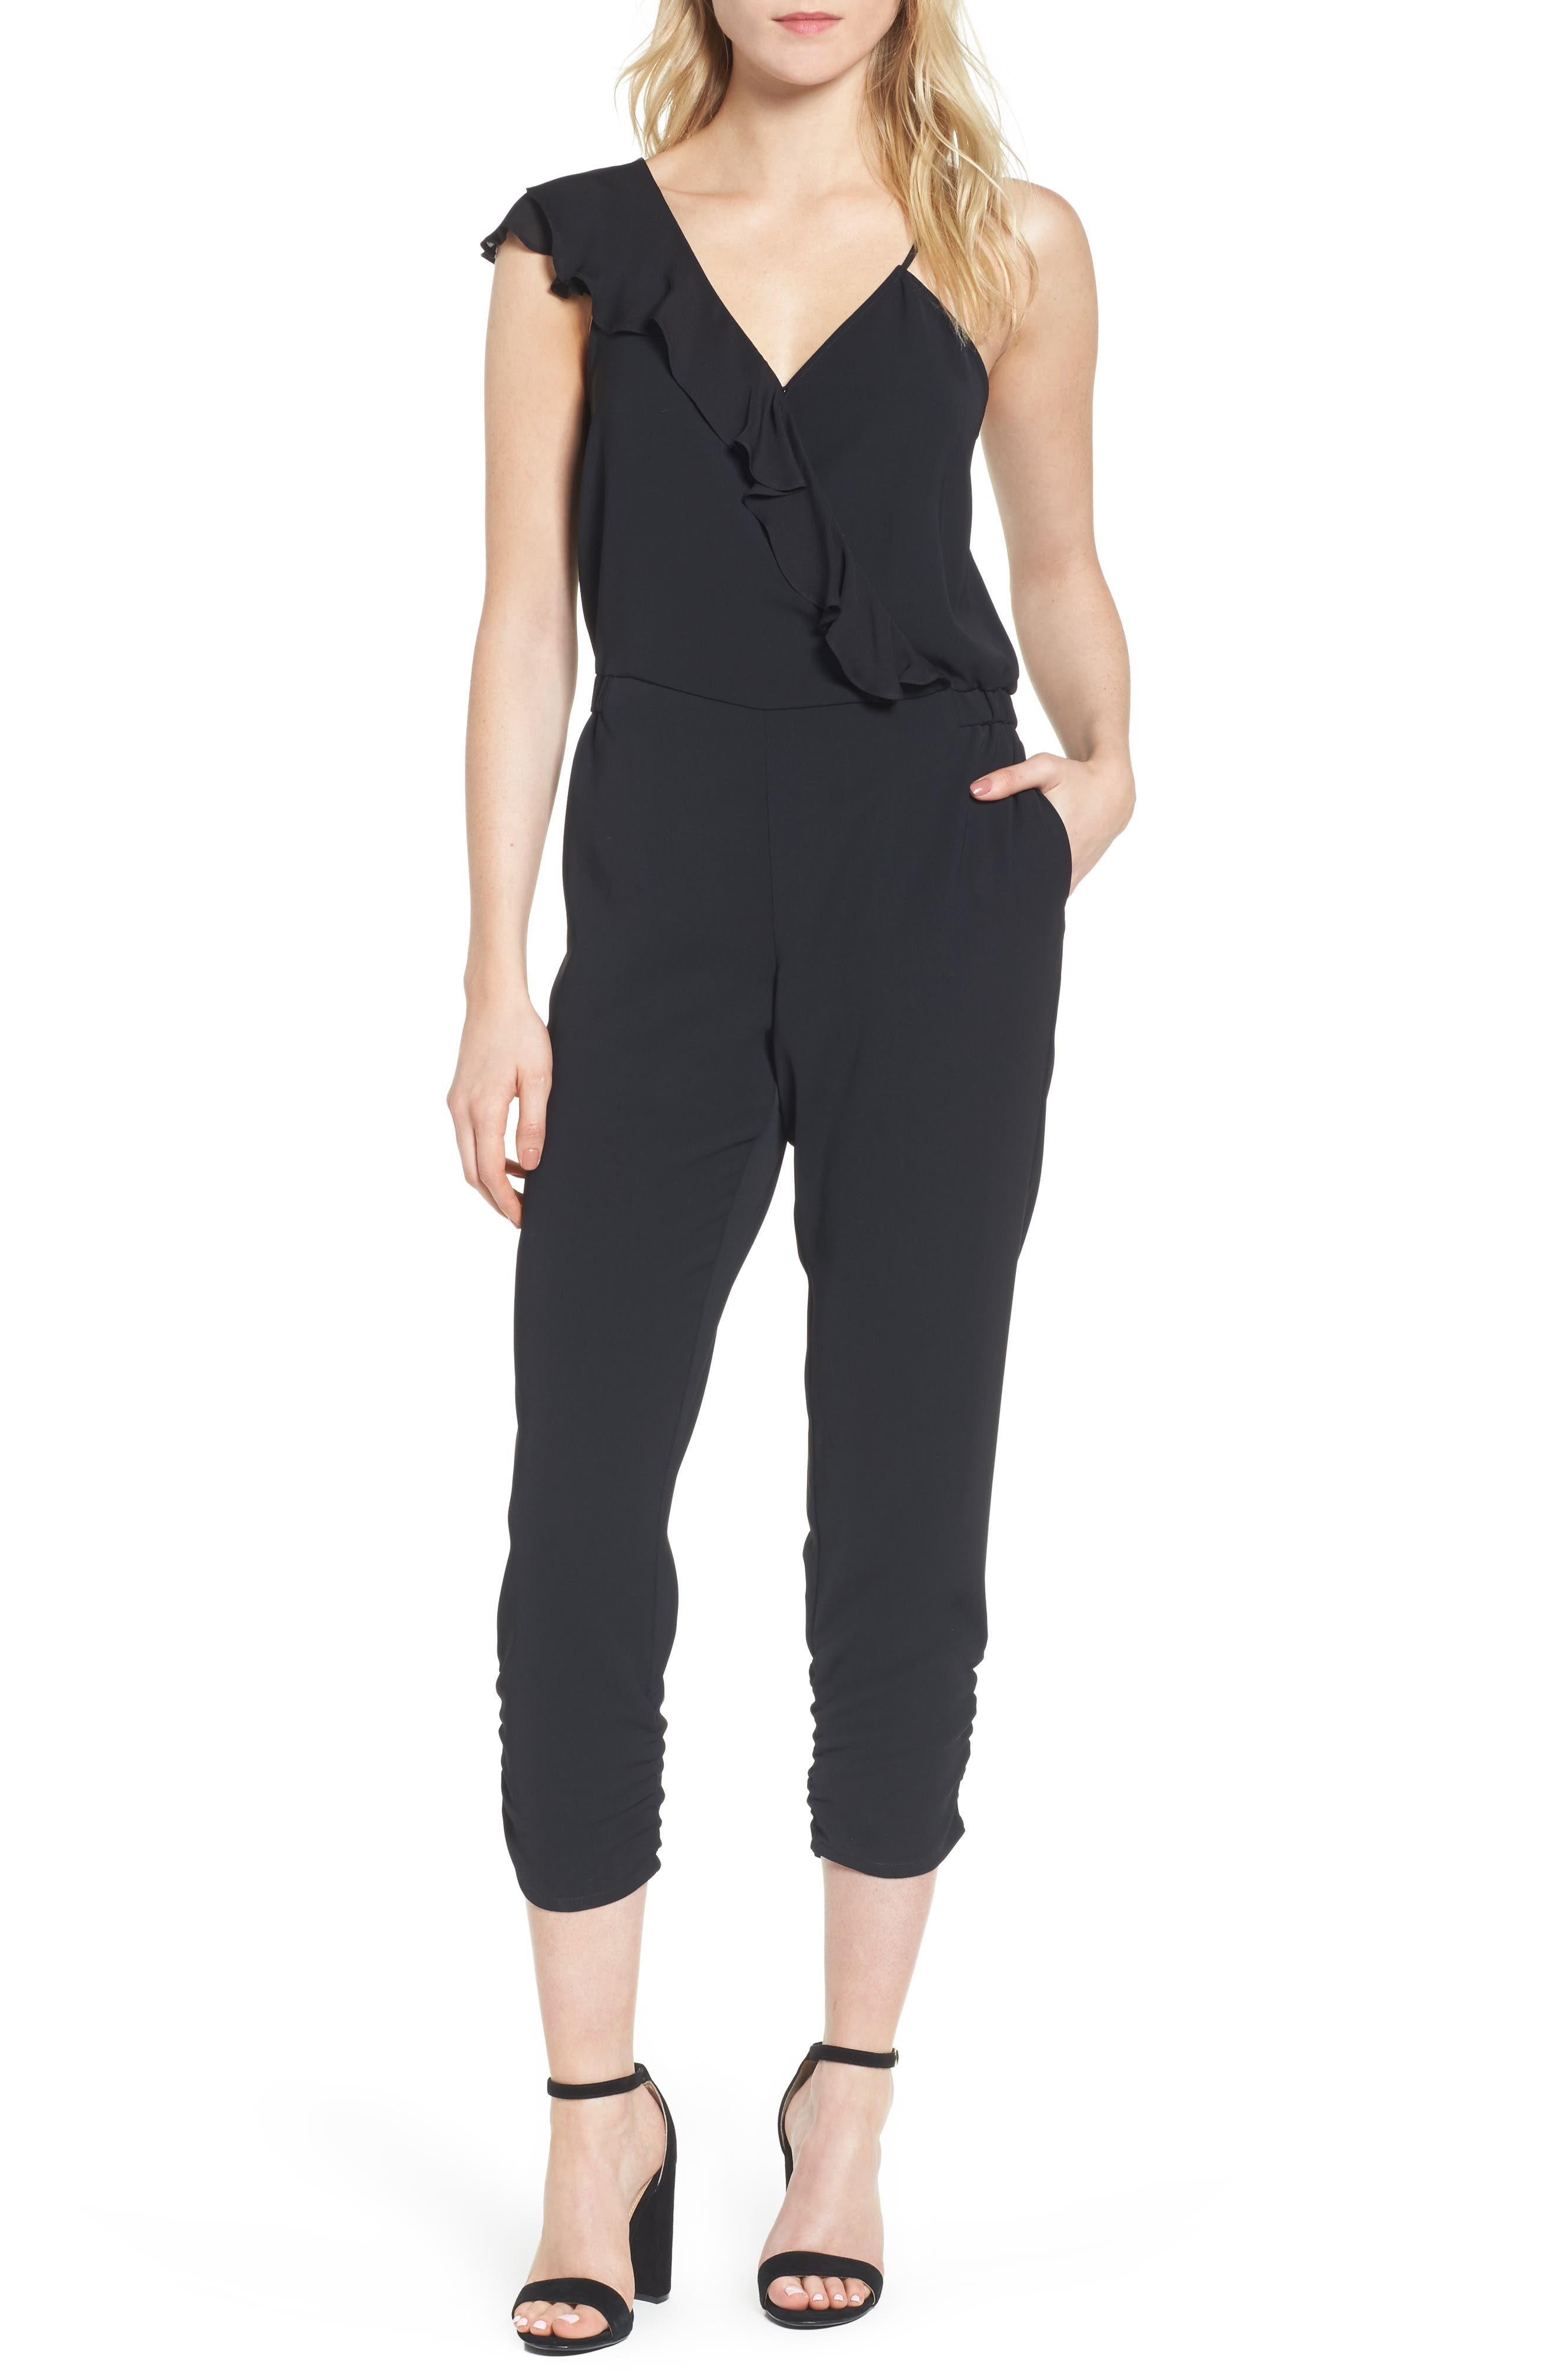 Addison Asymmetrical Jumpsuit,                             Main thumbnail 1, color,                             Black